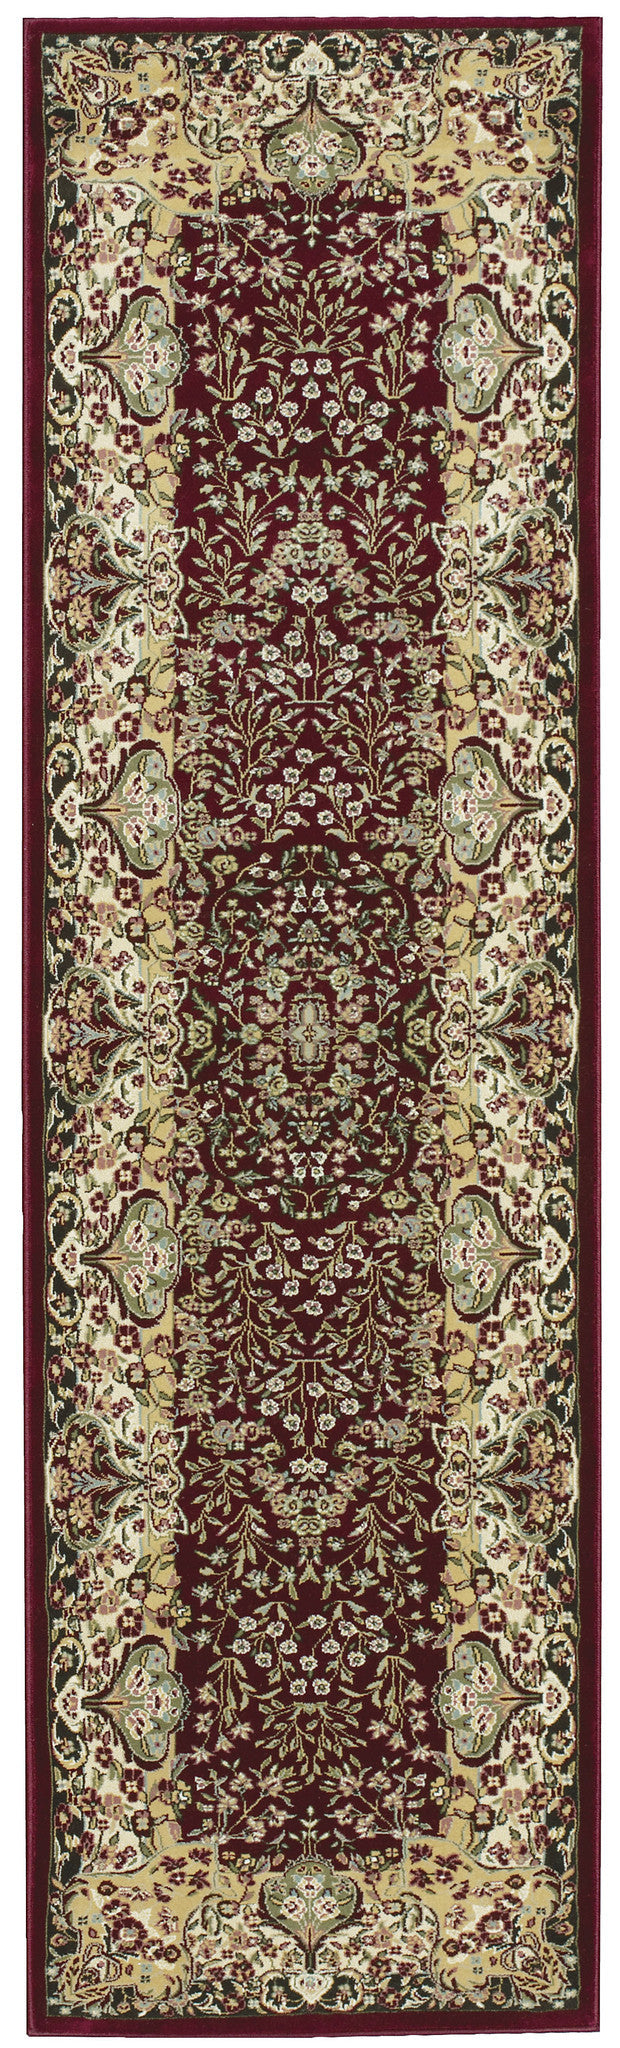 Kathy Ireland Antiquities Stately Empire Burgundy Area Rug By Nourison ANT05 BUR